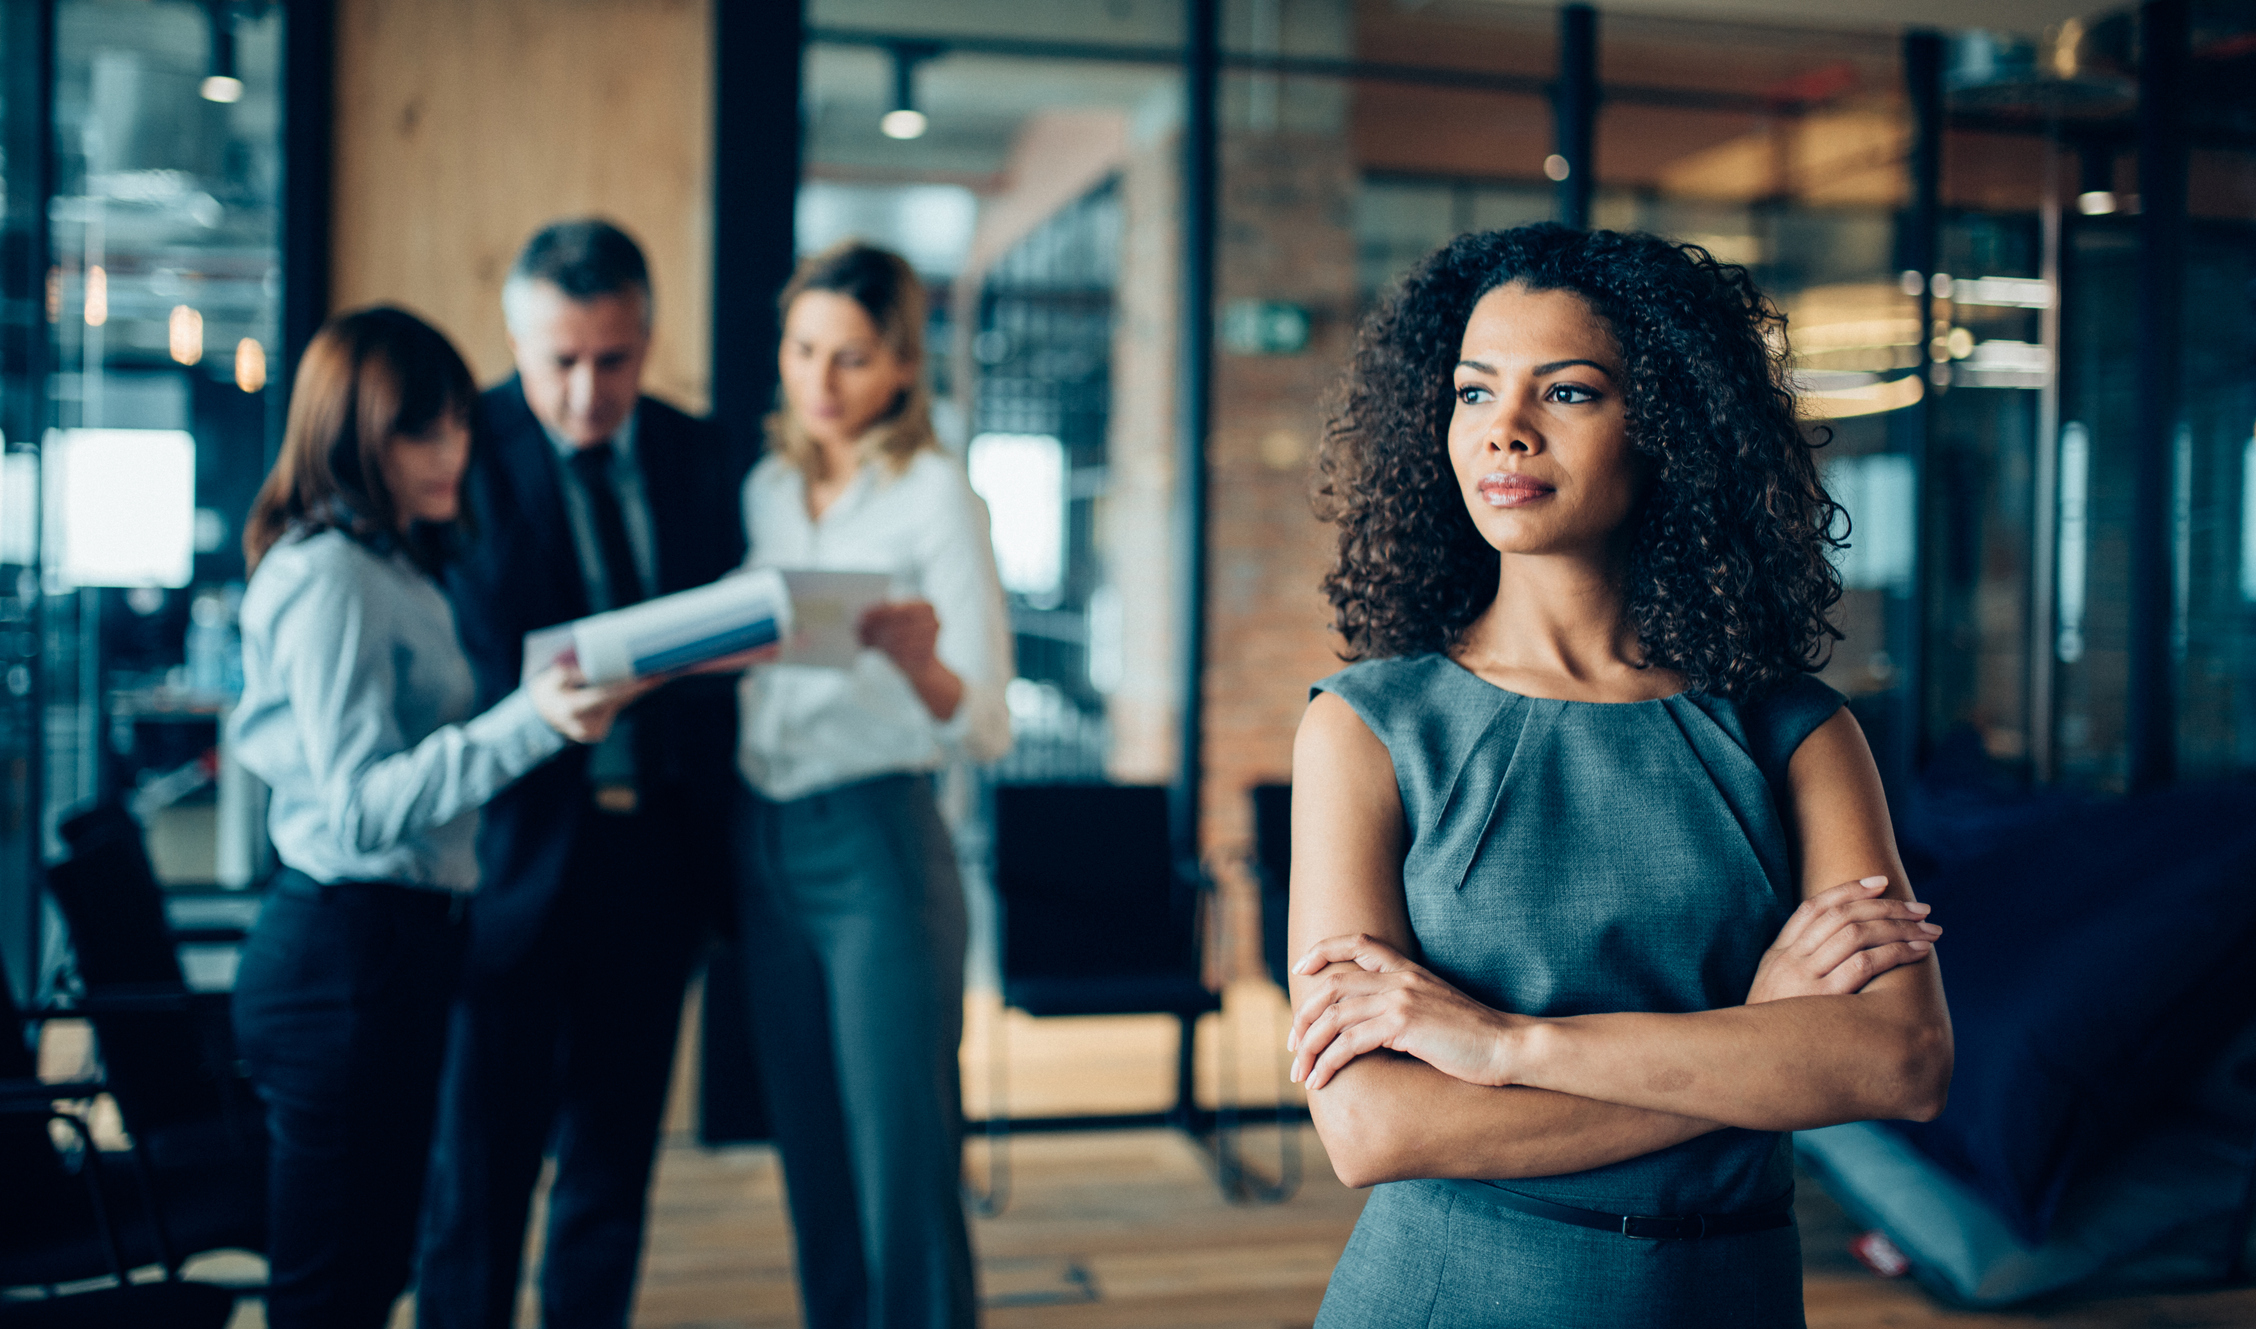 Woman in the workplace thinking of a big decision